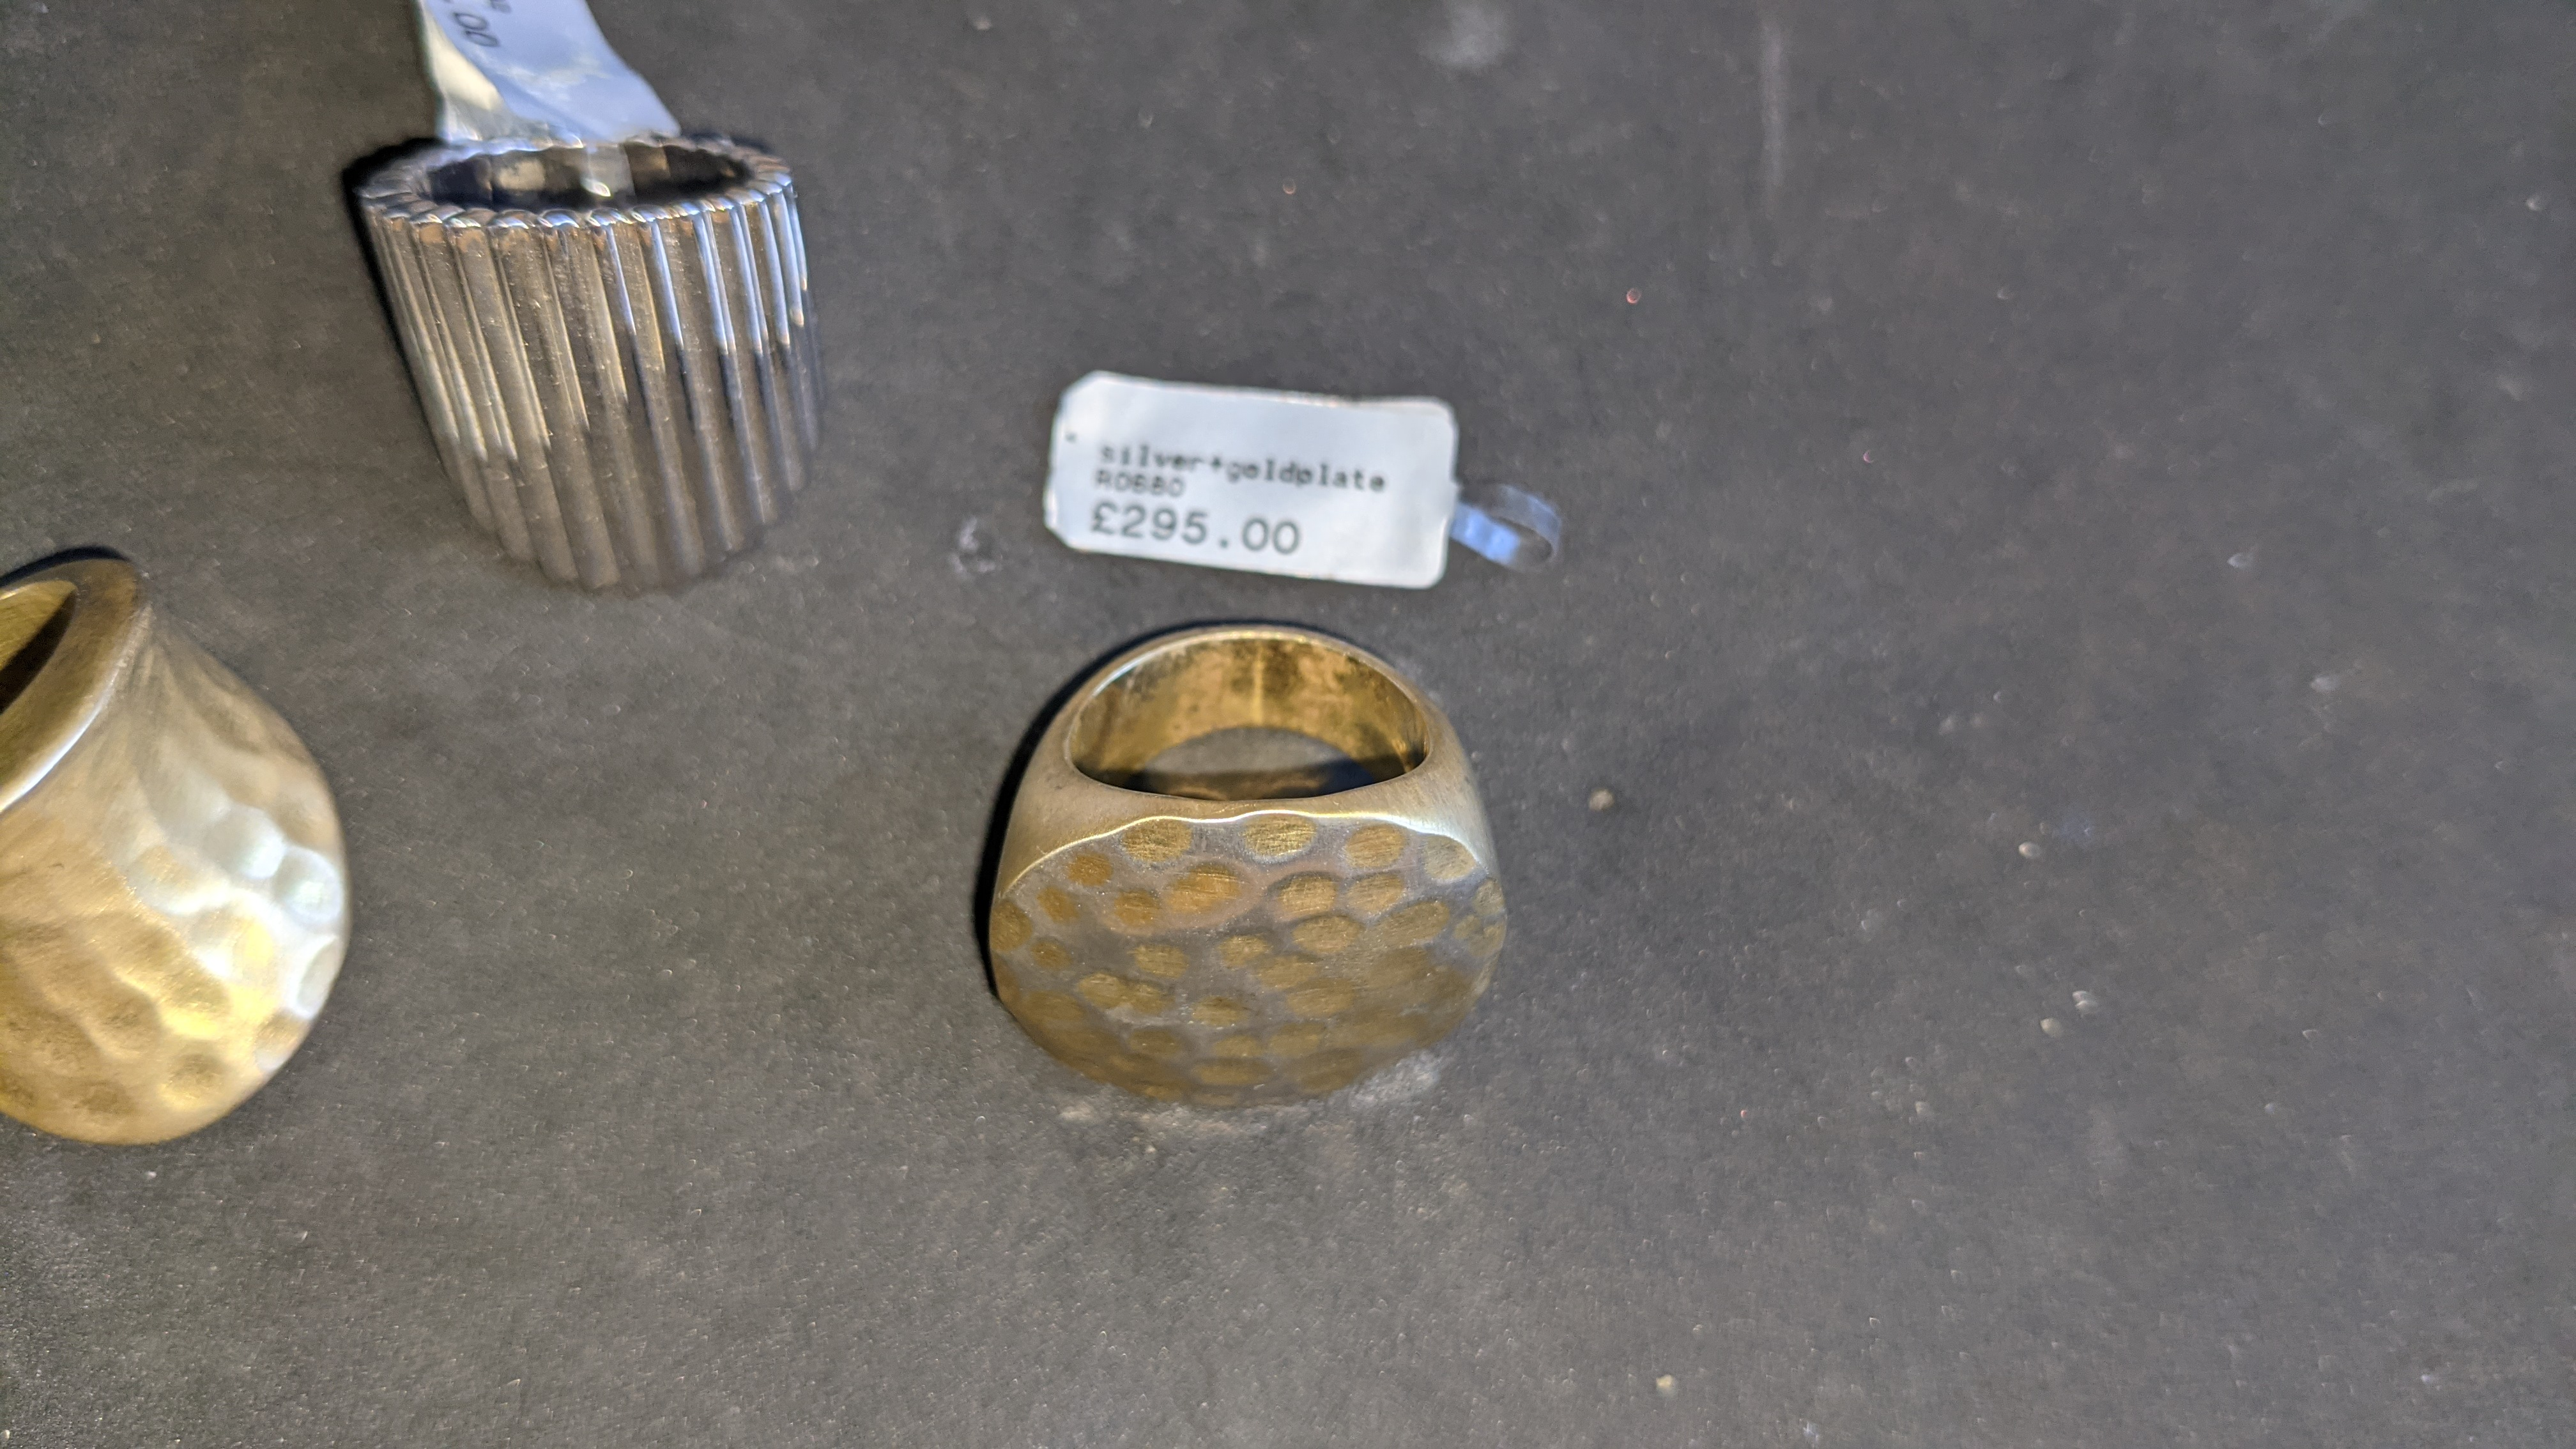 3 off large unusually shaped rings with RRPs of £205 - £295 per ring. Total RRP is £795 - Image 6 of 14